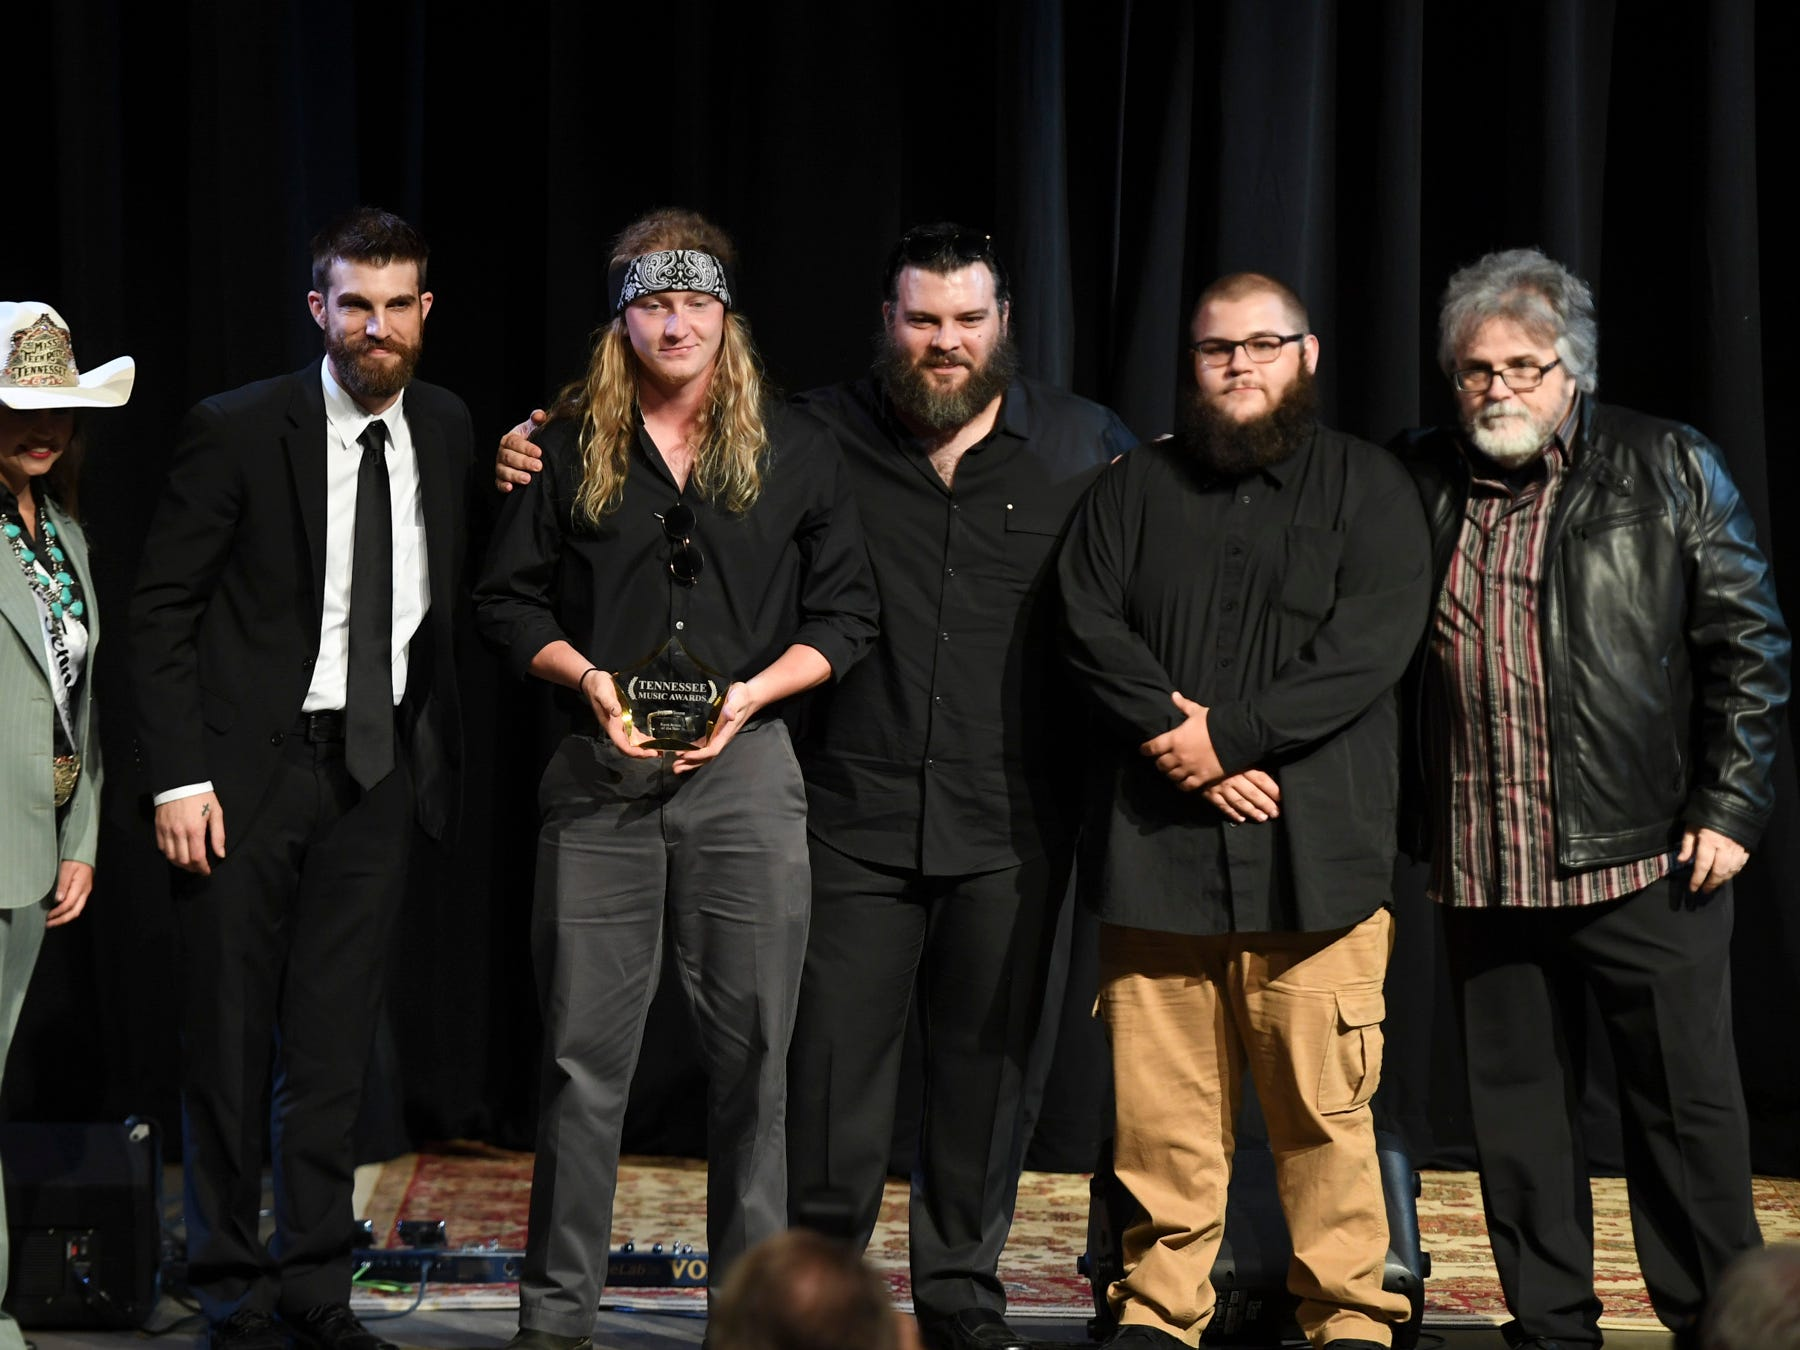 Jupiter Stone received the award for Rock Artist of the Year at the 2nd Annual Tennessee Music Awards, Monday, October 8, at University of Memphis Lambuth.